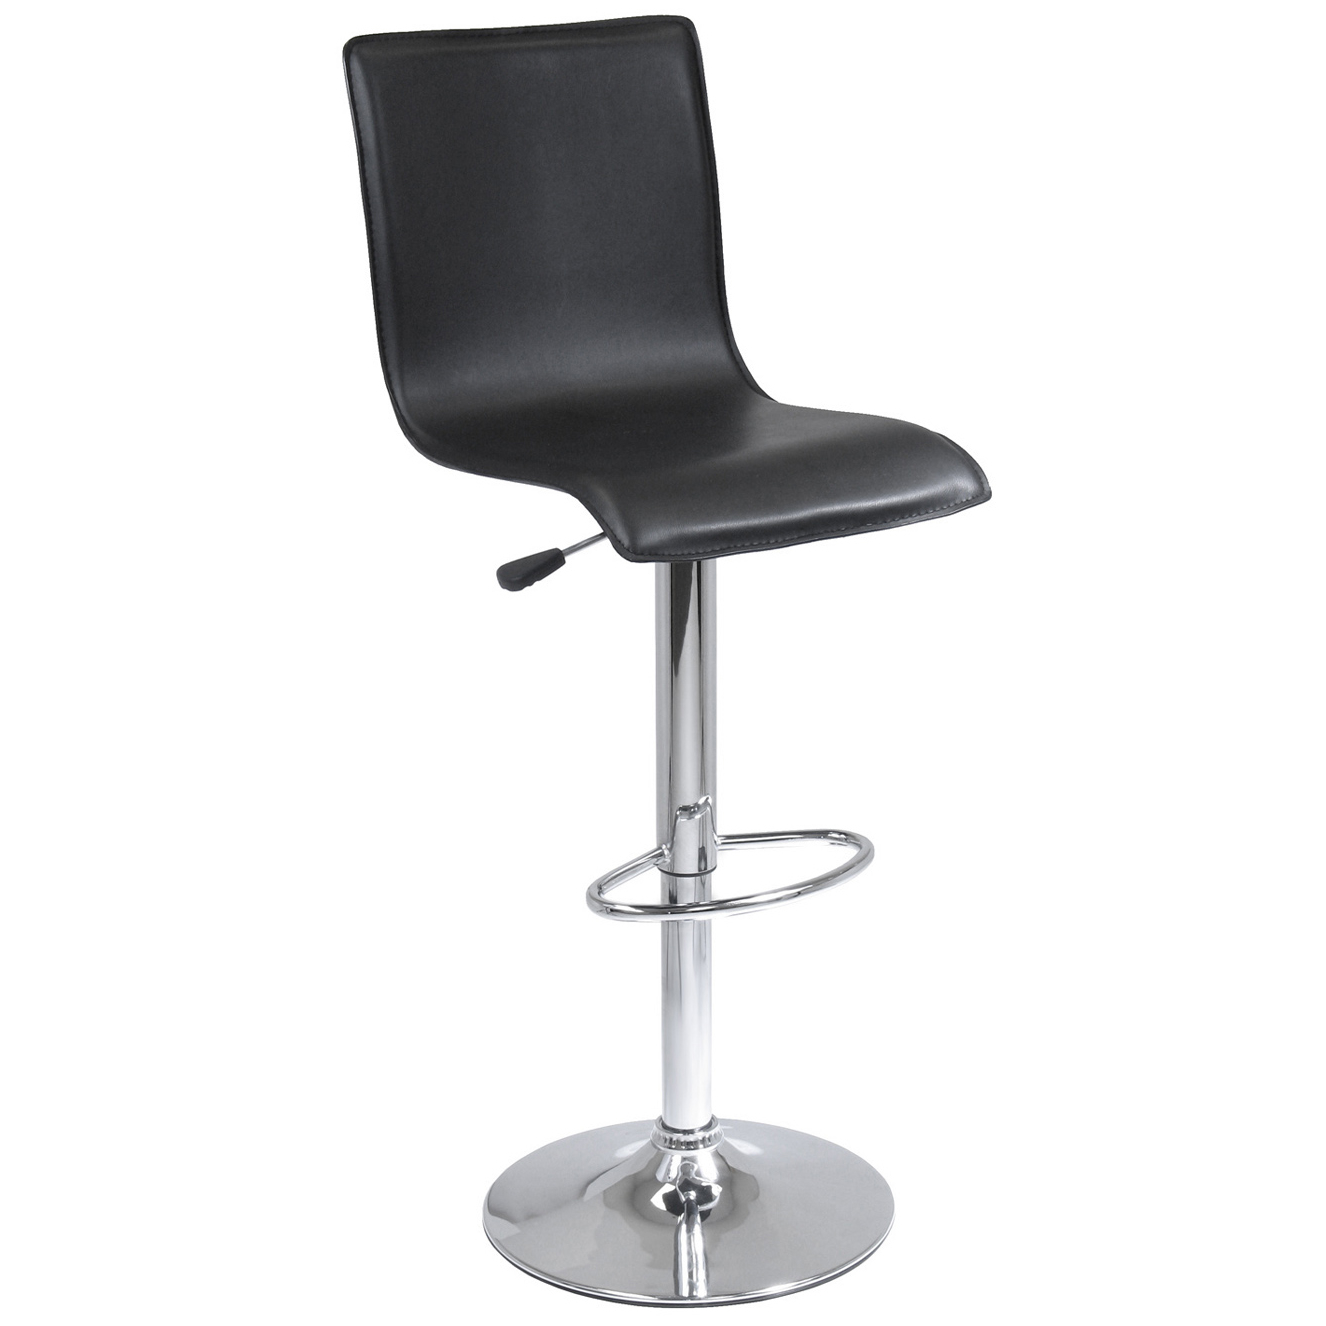 Winsome Wood 93145 Black Faux Leather & Chrome Swivel Stool With Back by Winsome Trading Inc